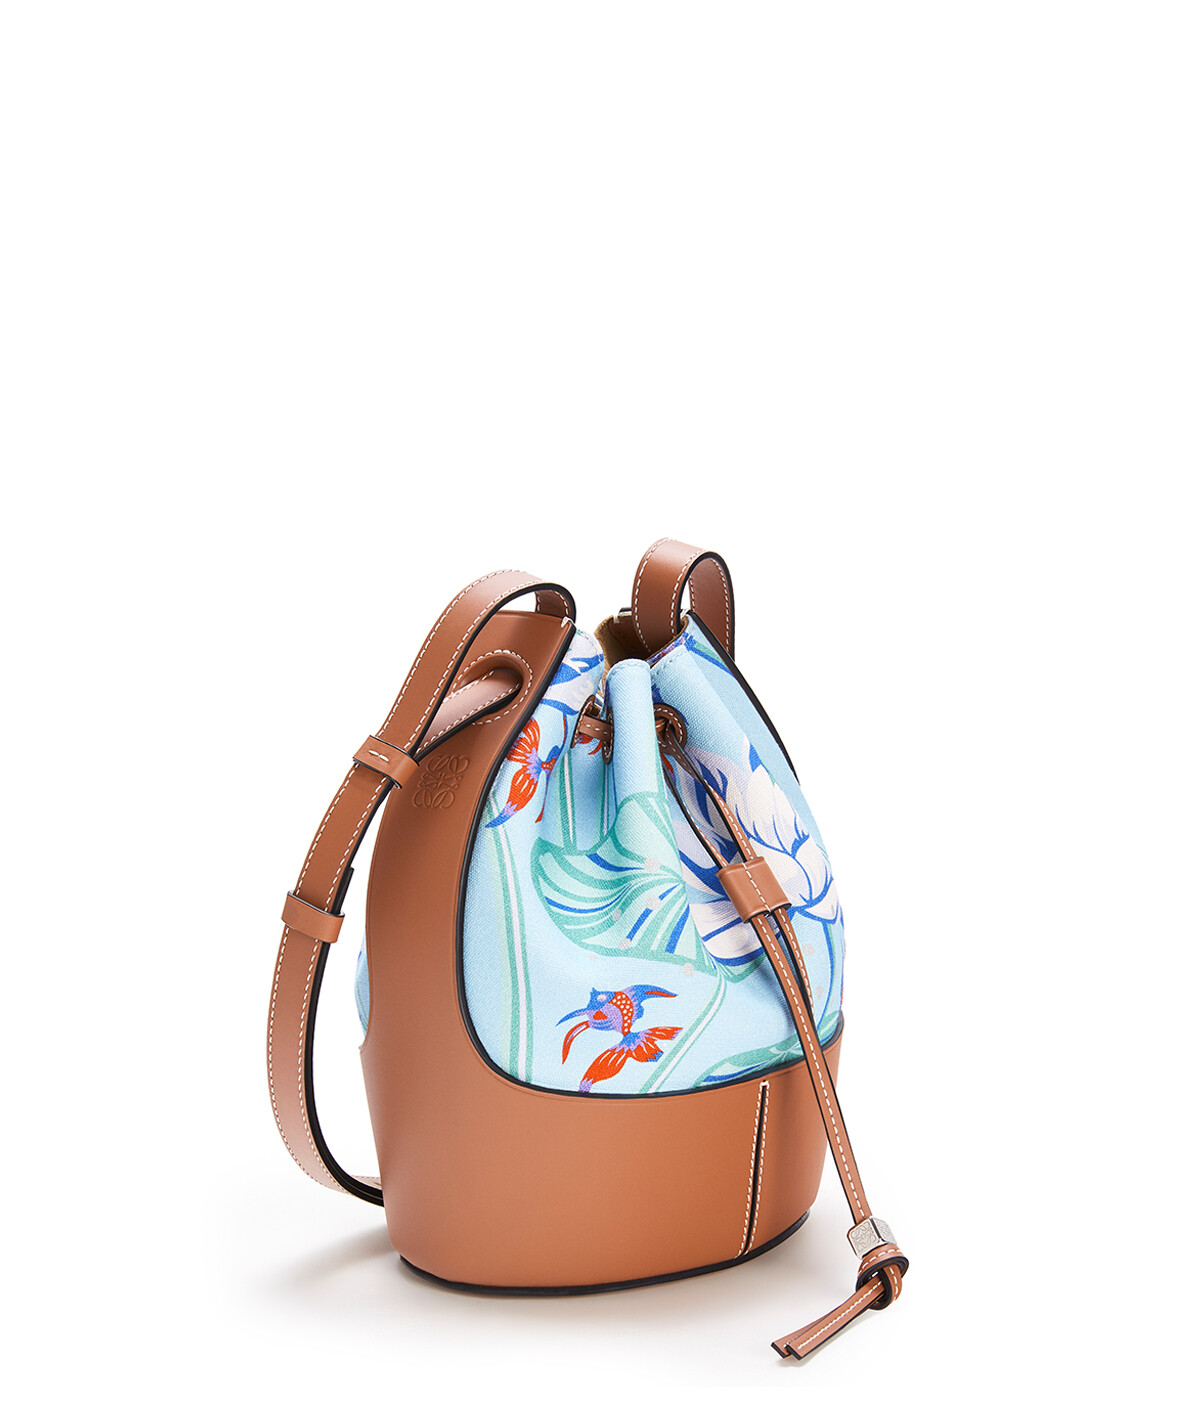 LOEWE Small Balloon Bag In Waterlily Canvas And Calfskin Aqua/Tan front